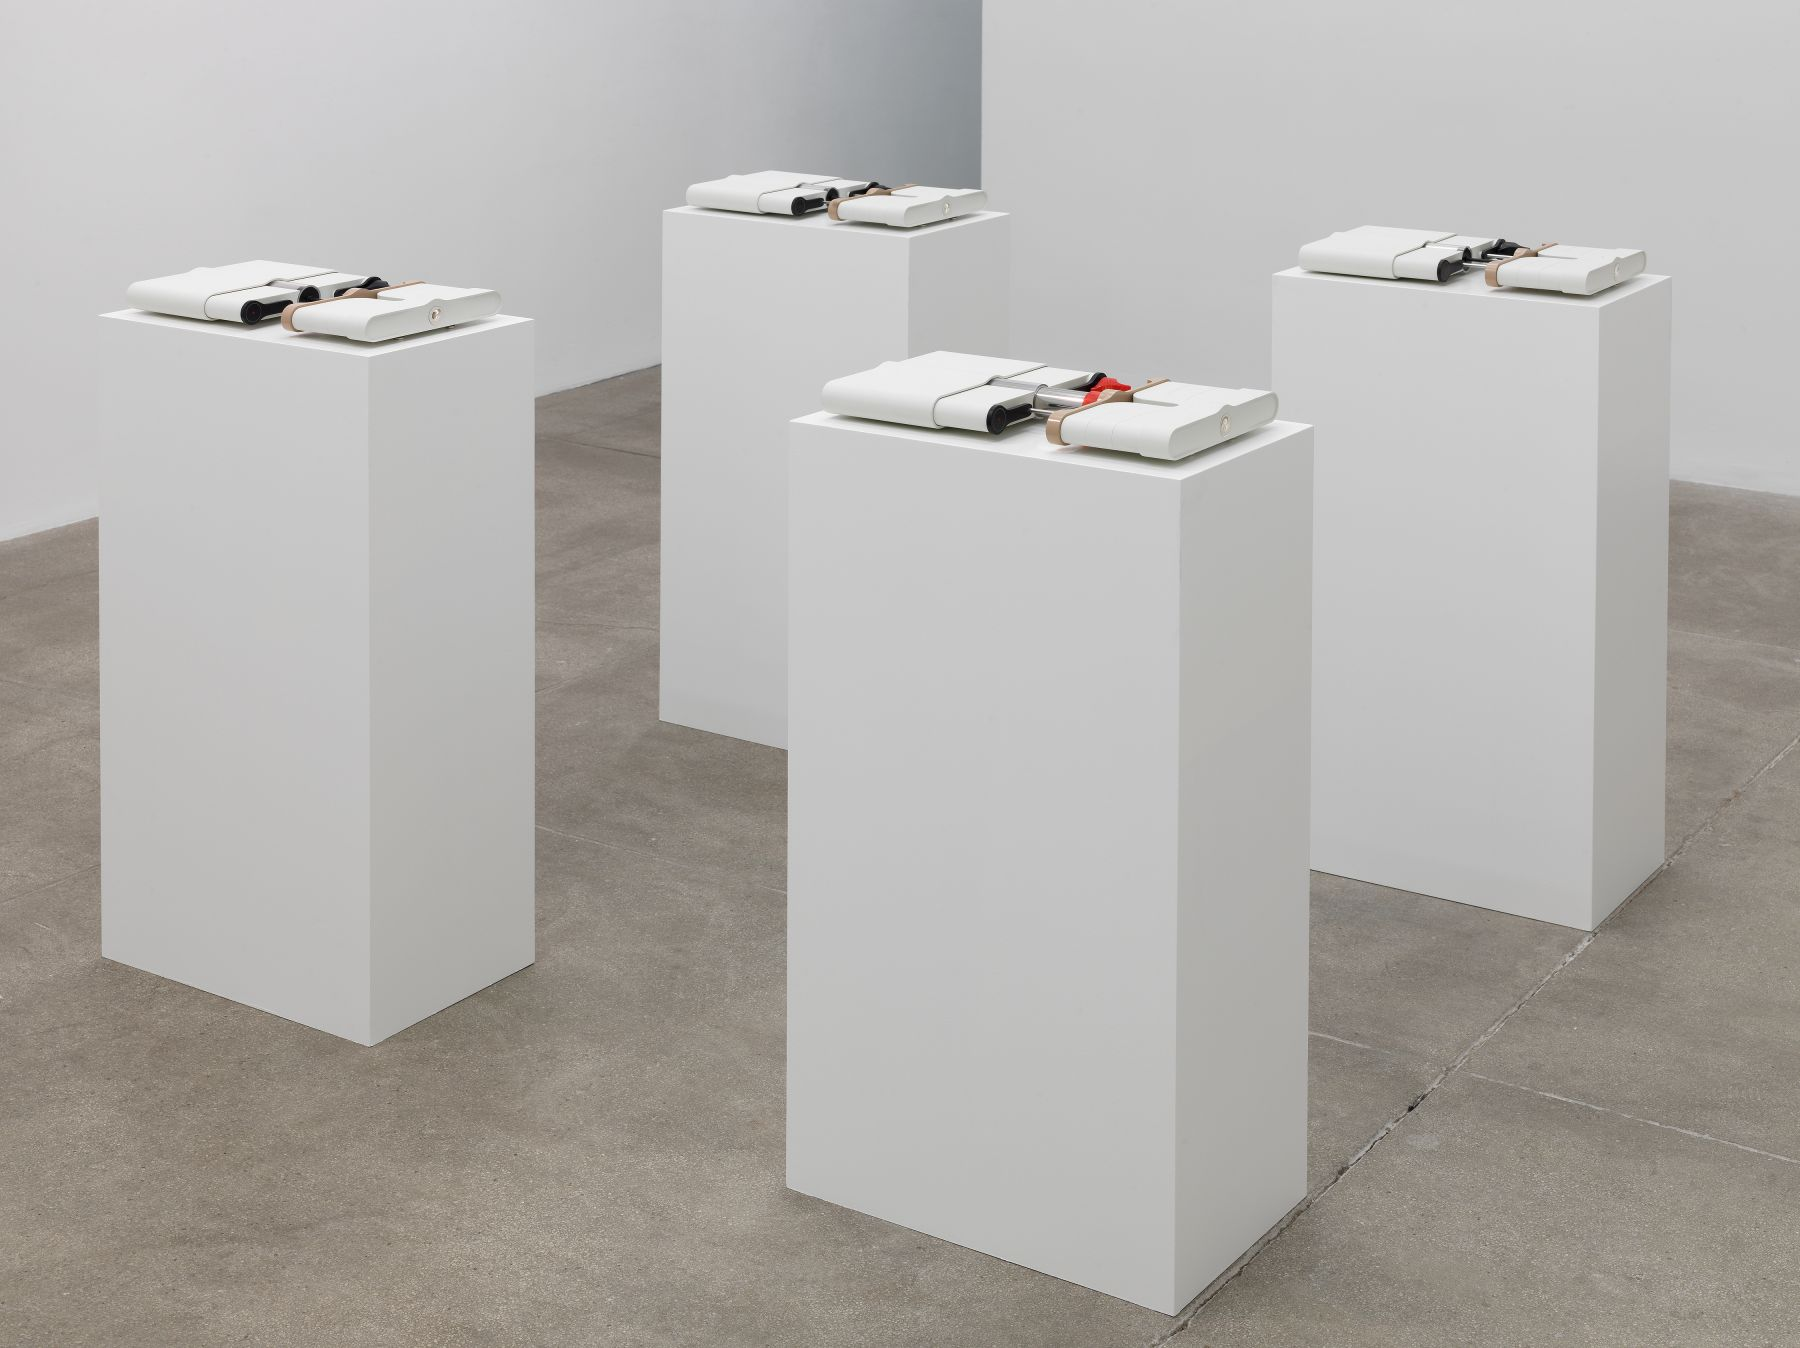 Camille Blatrix/Franco Vaccari, Andrew Kreps Gallery, New York, April 13 - May 13, 2017